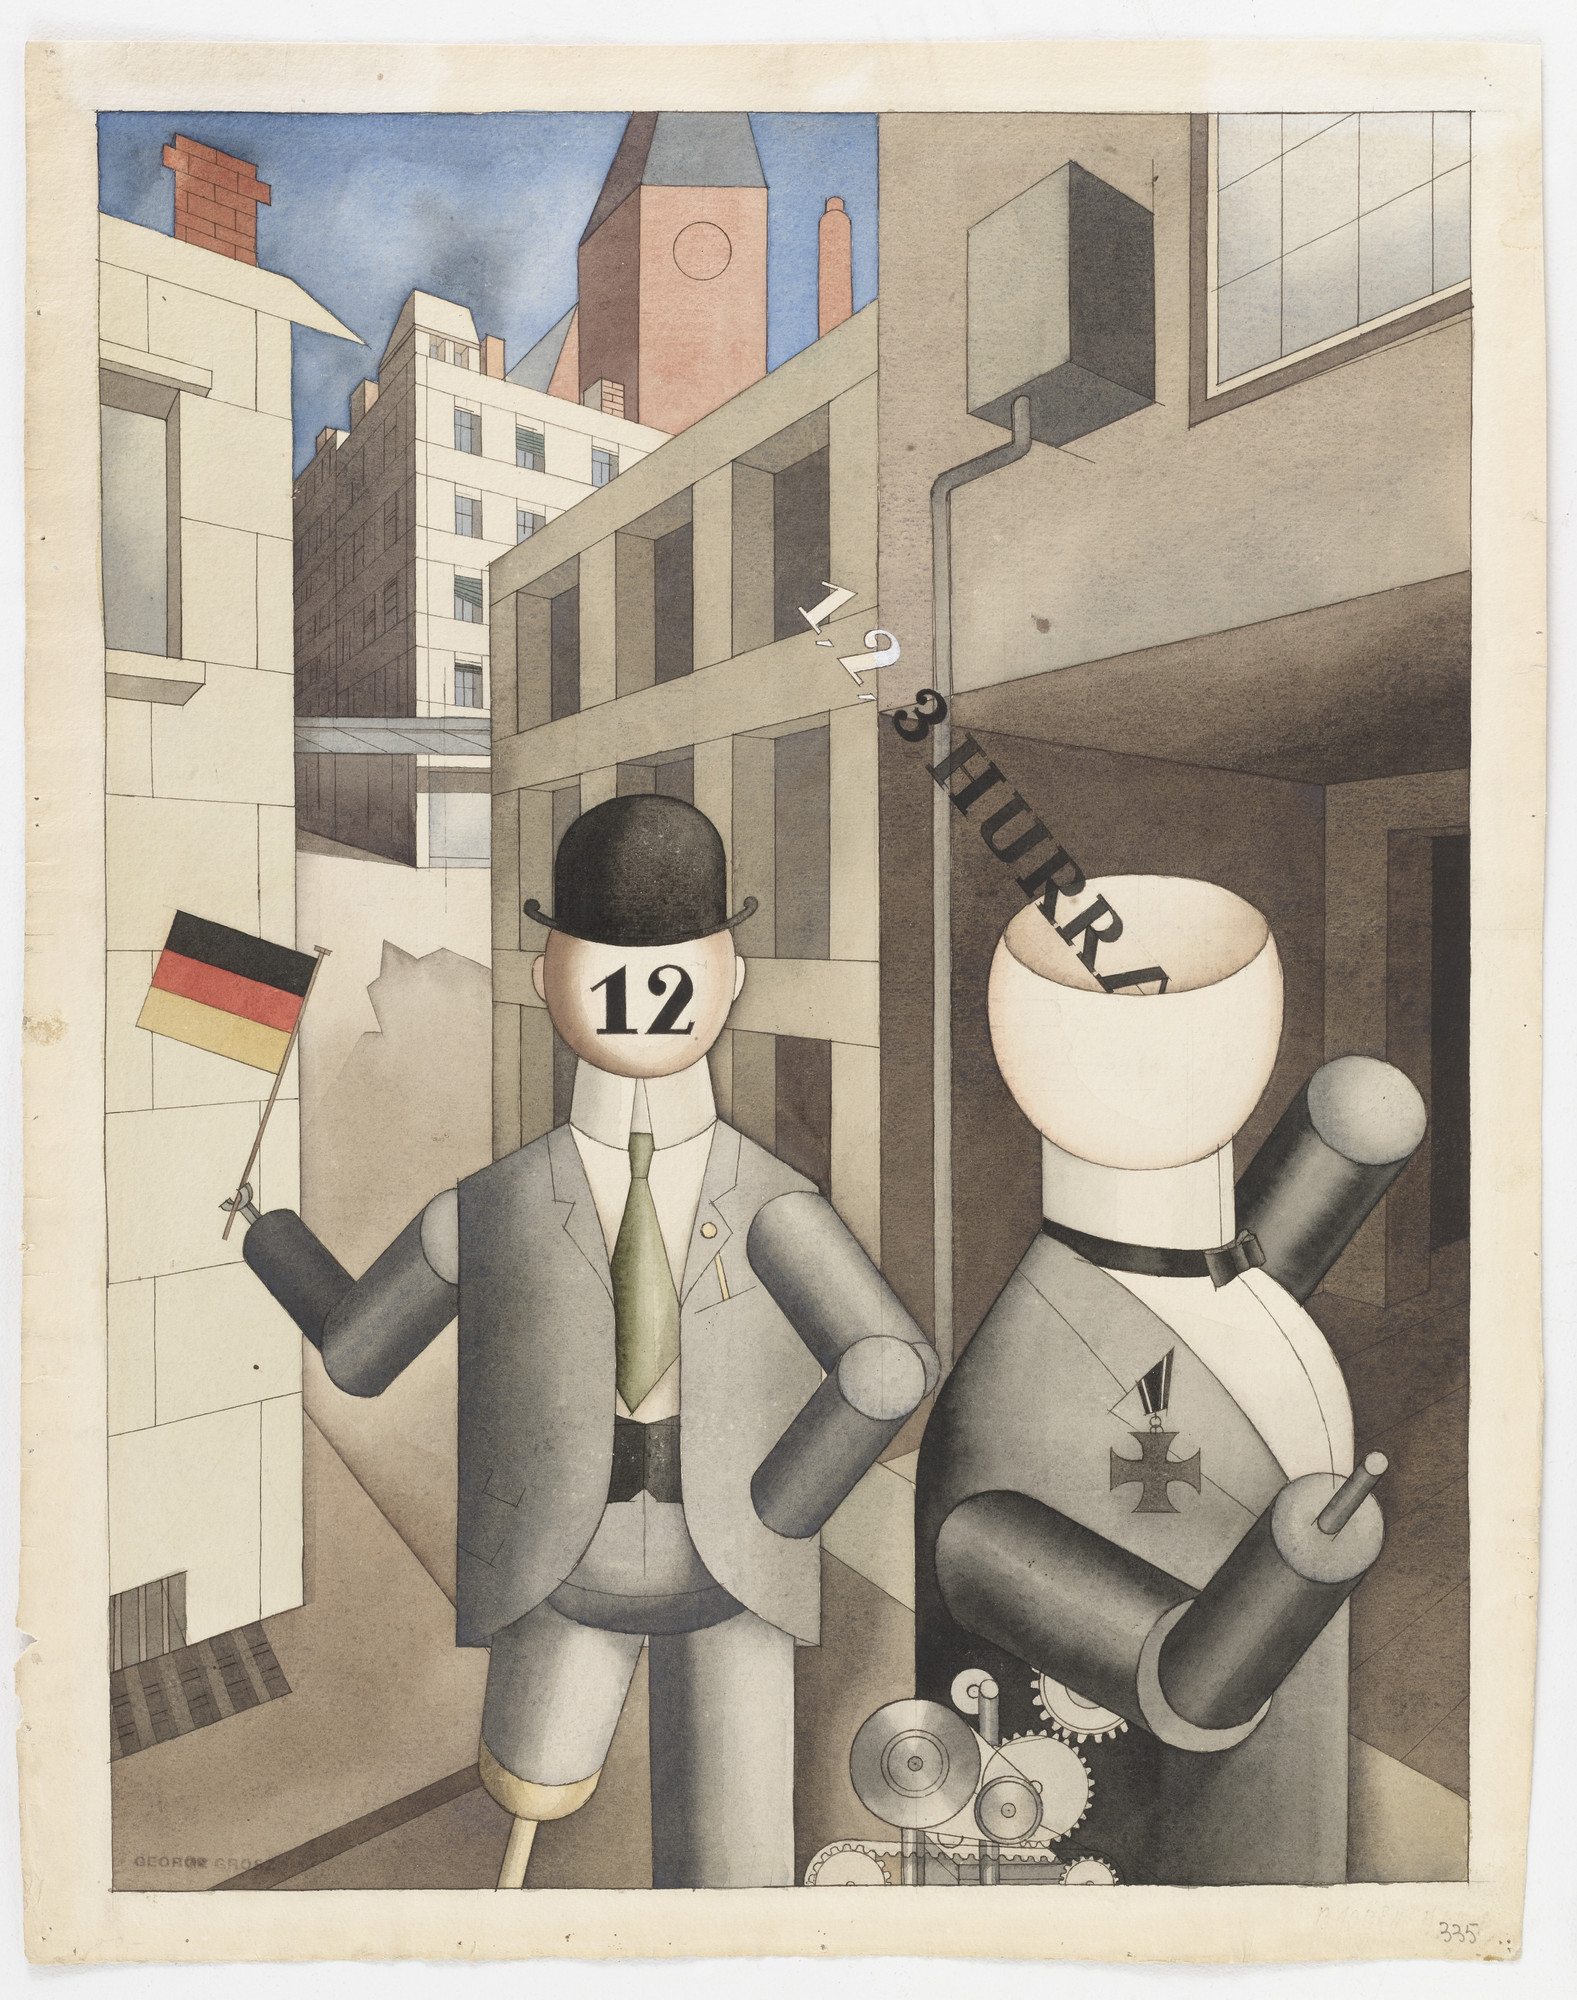 George Grosz. Republican Automatons (Republikanische Automaten). 1920. Watercolor and pencil on paper; 23 5/8 × 18 5/8″ (60 × 47.3 cm). The Museum of Modern Art, New York. Advisory Committee Fund. © 2003 The Museum of Modern Art, New York. © 2003 Artists Rights Society (ARS), New York/VG Bildkunst, Bonn